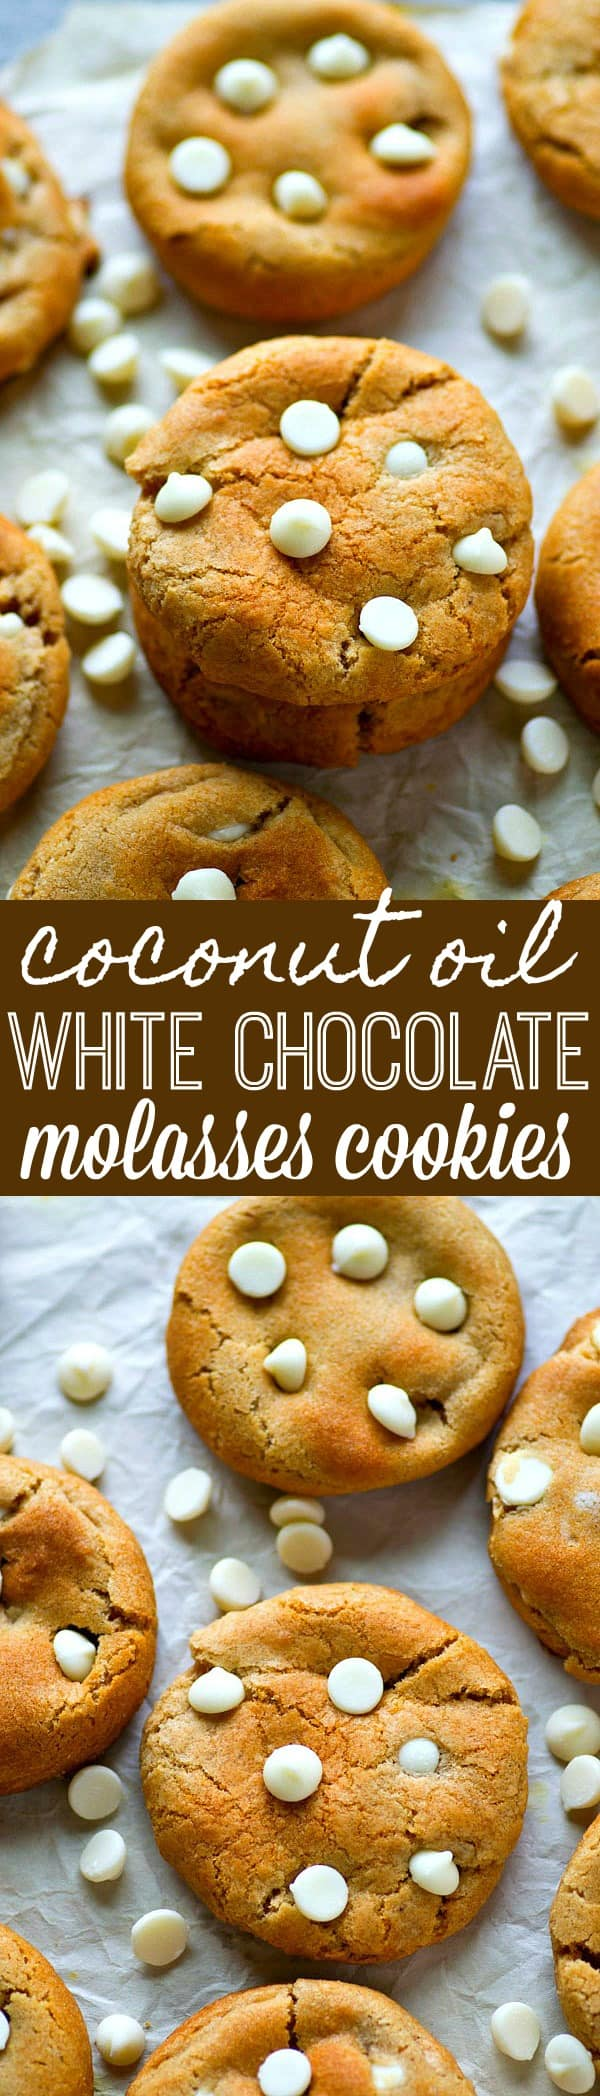 The SOFTEST and chewiest molasses cookies you'll ever have in your life! Coconut oil is the secret ingredient in these addicting white chocolate molasses cookies.